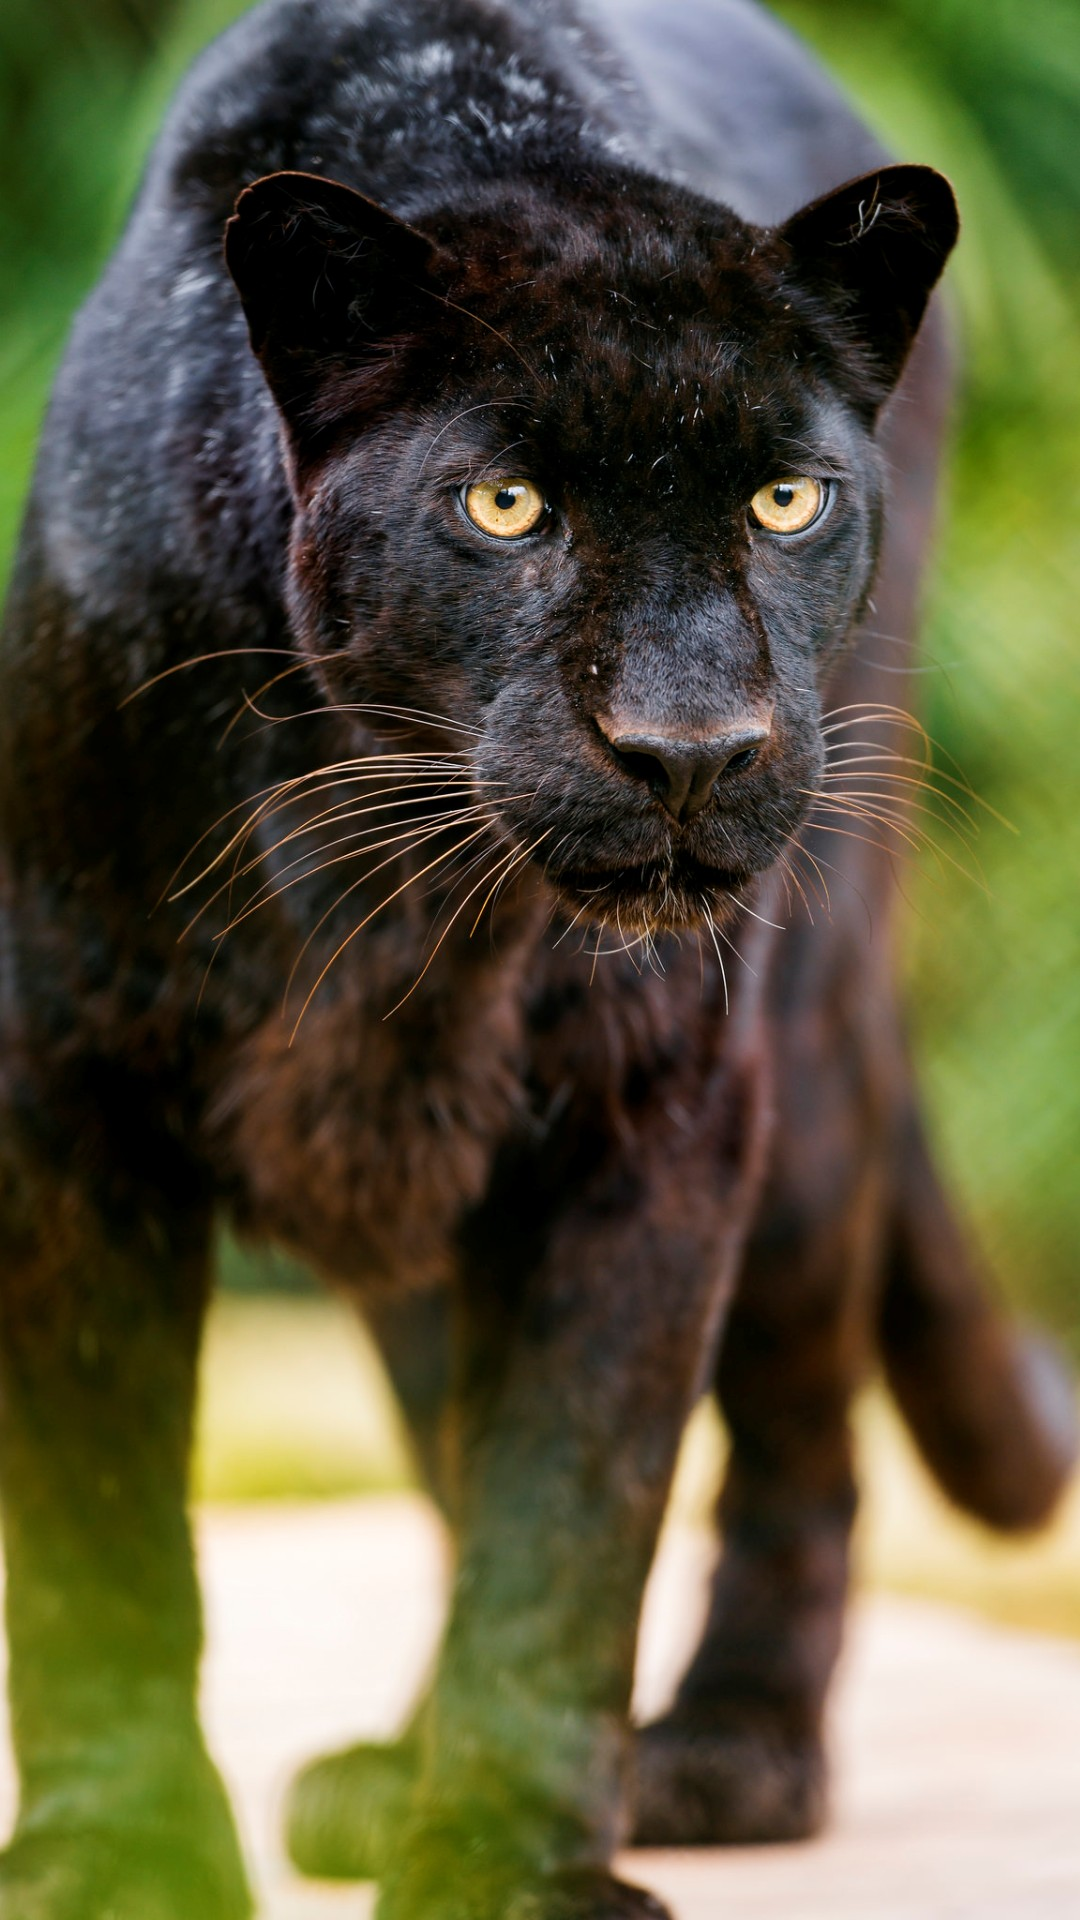 Black Leopard Looking At Me Wallpapers 1080x1920 321489